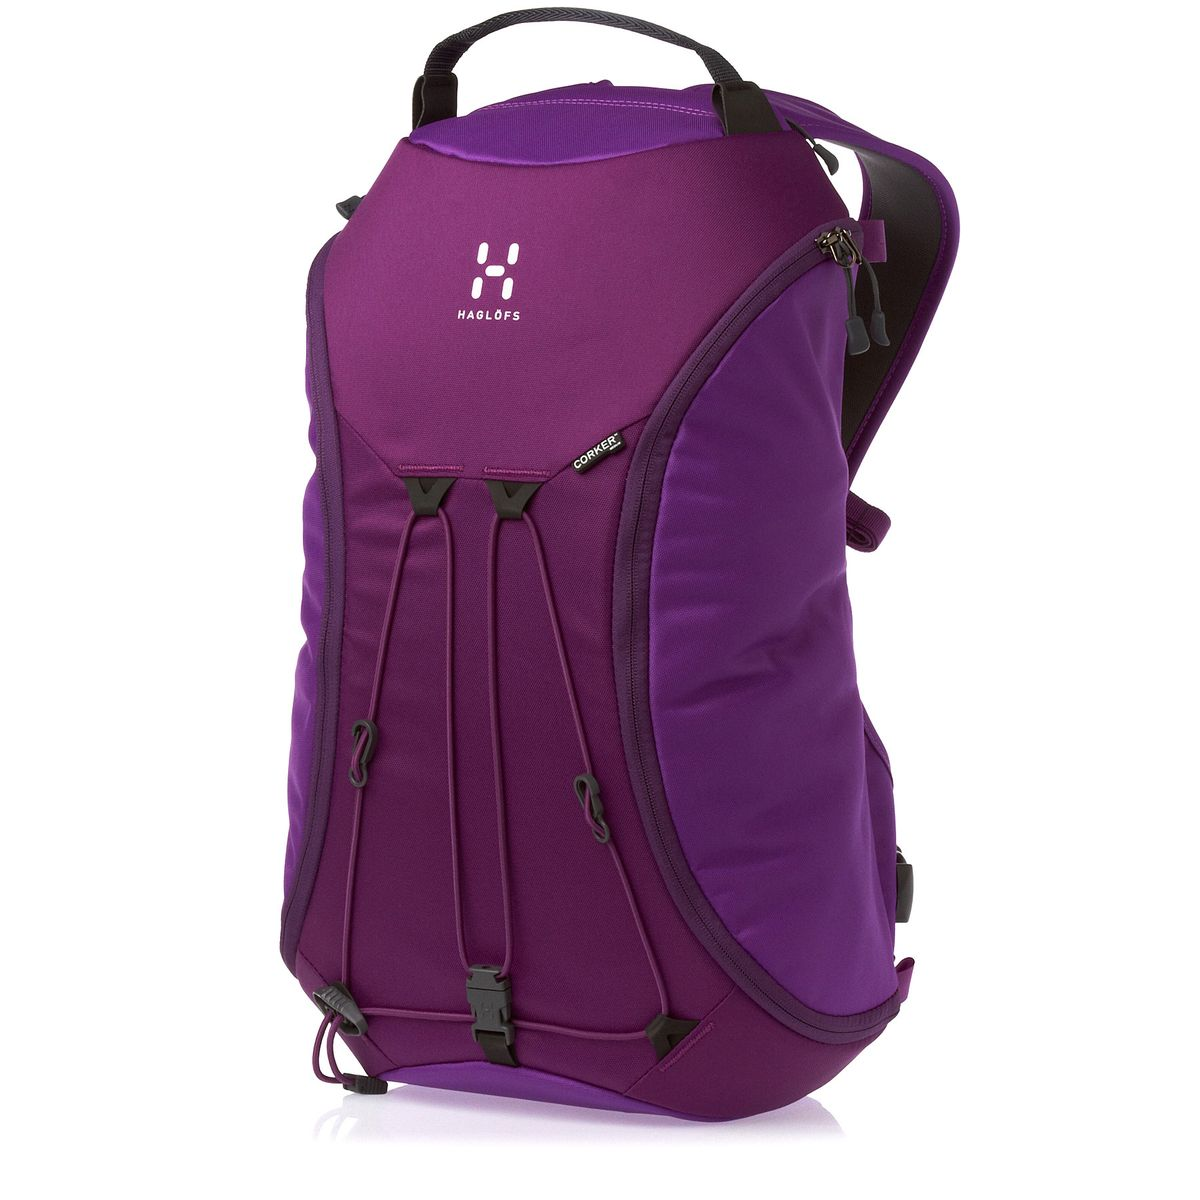 haglofs-backpacks-haglofs-corker-medium-backpack-royal-purple-imperial-purple